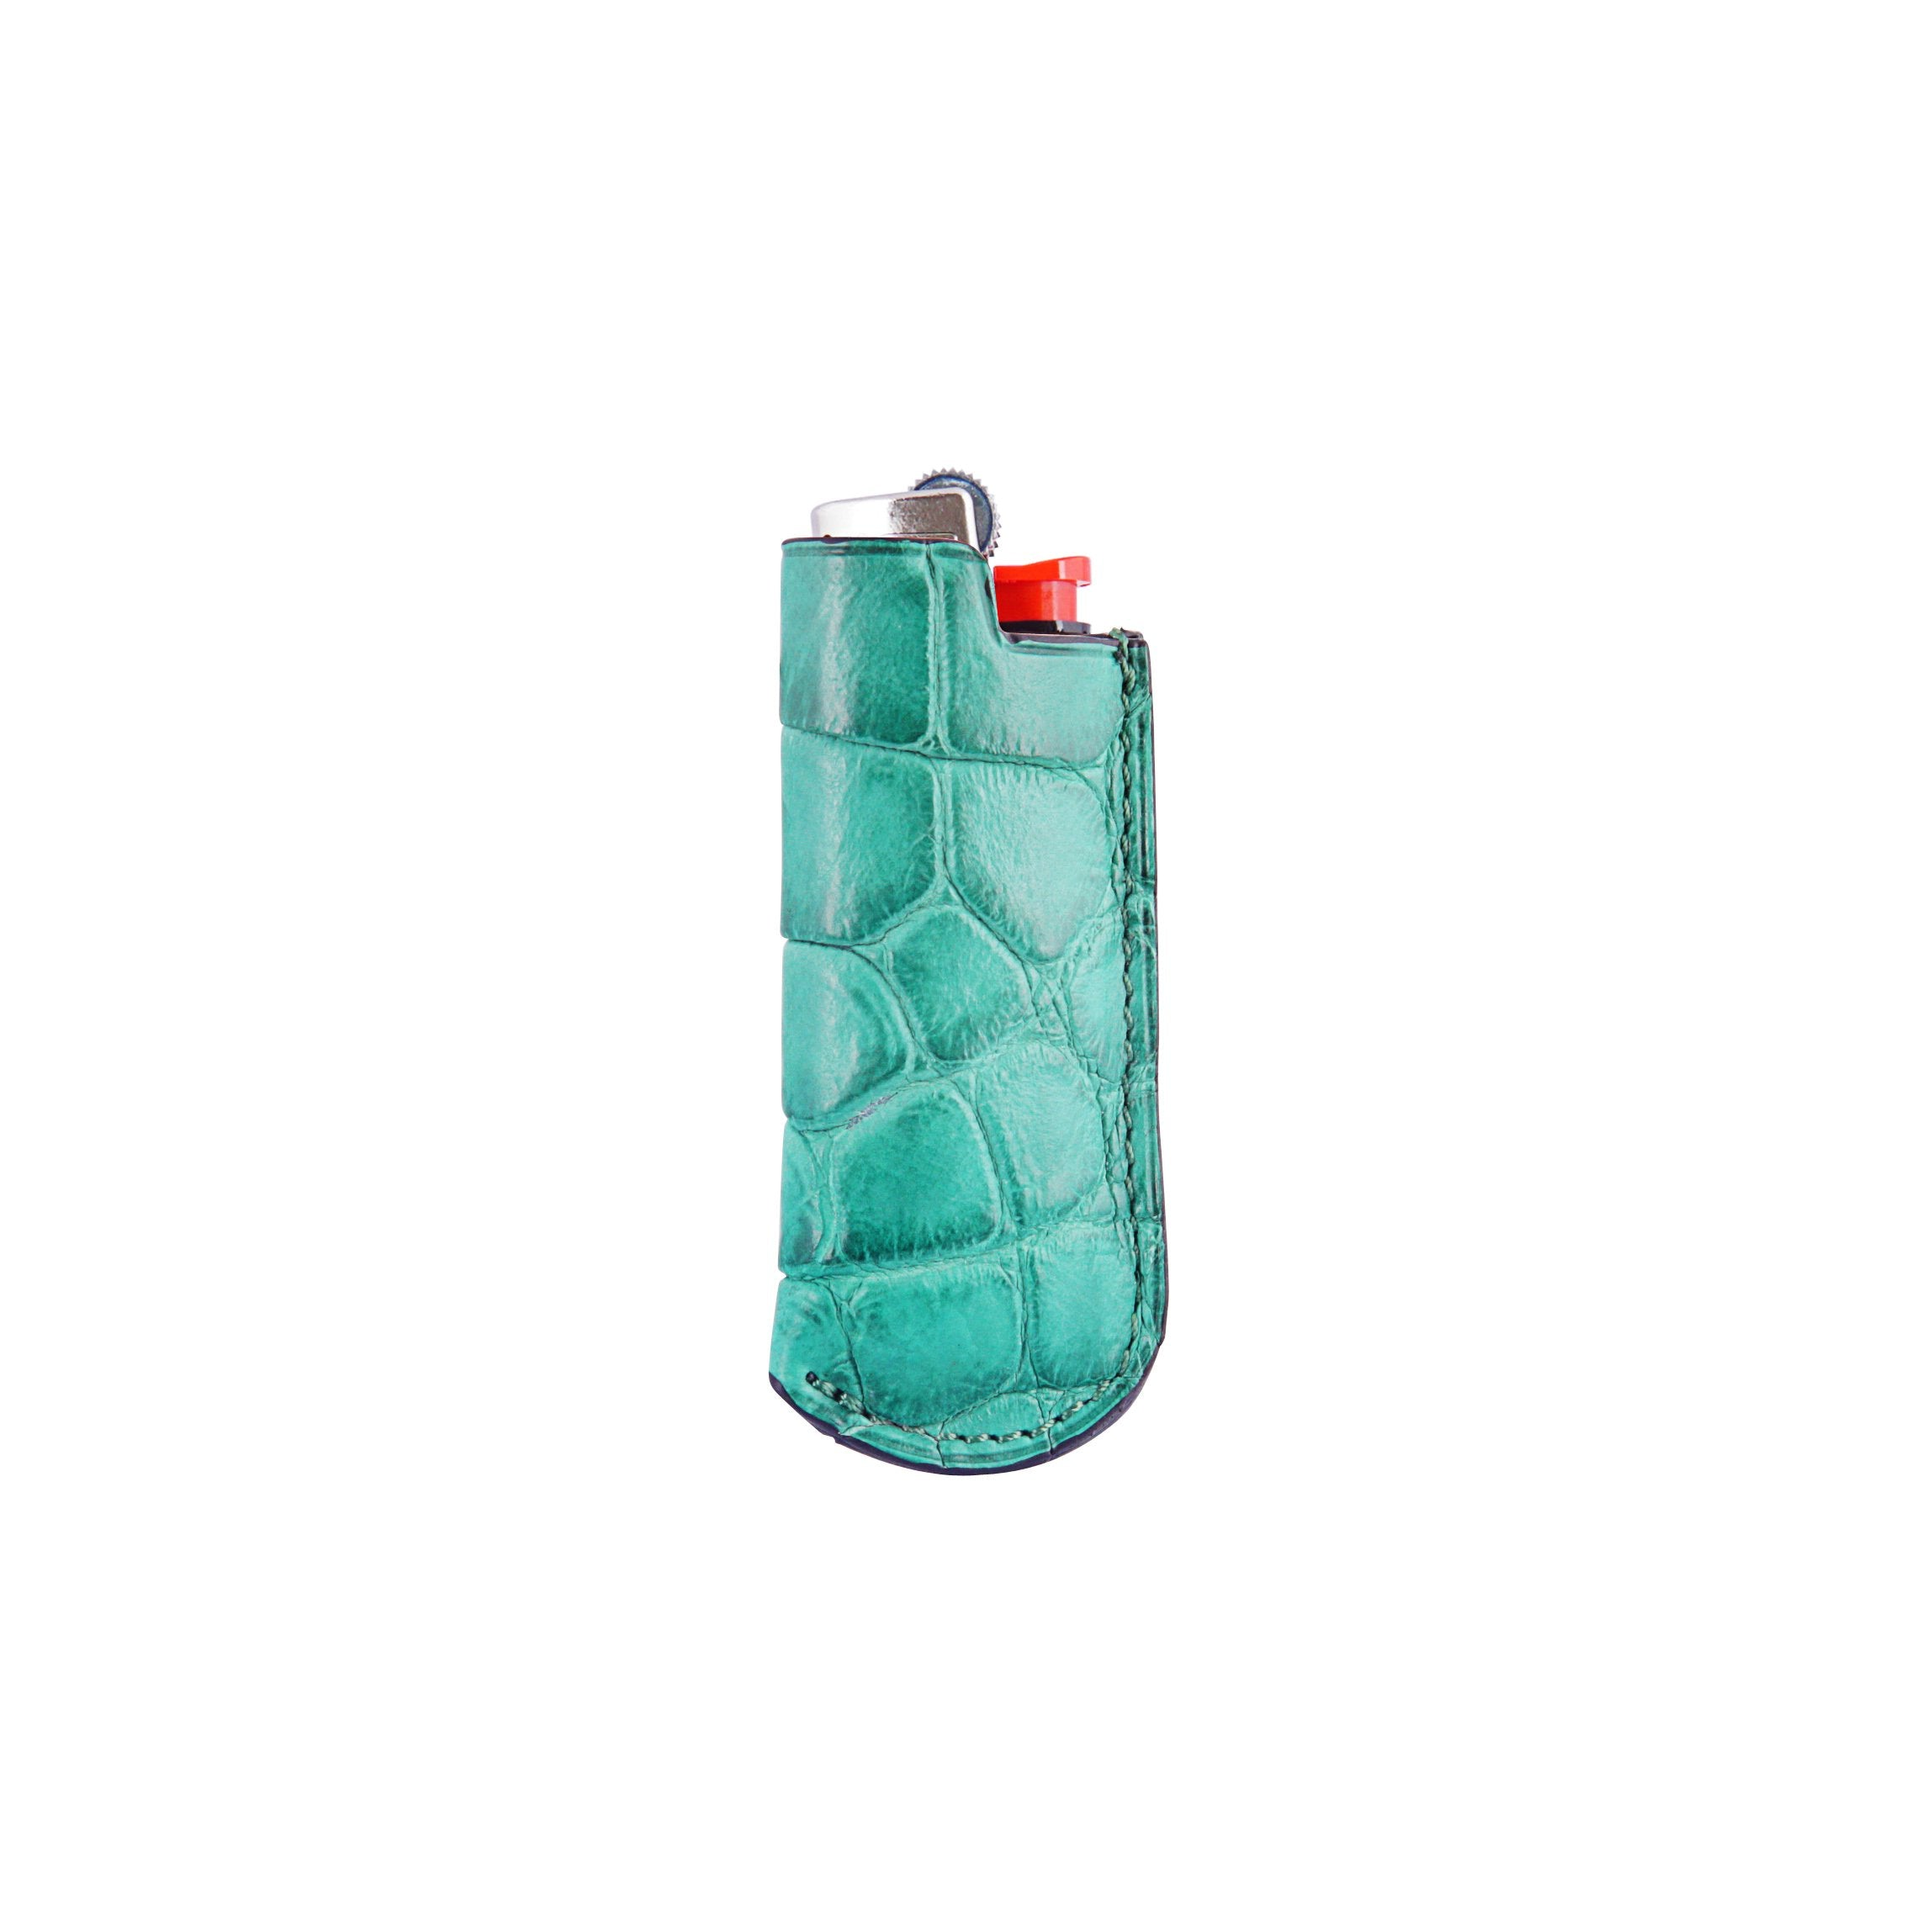 Lighter Case - Green Crocodile Leather